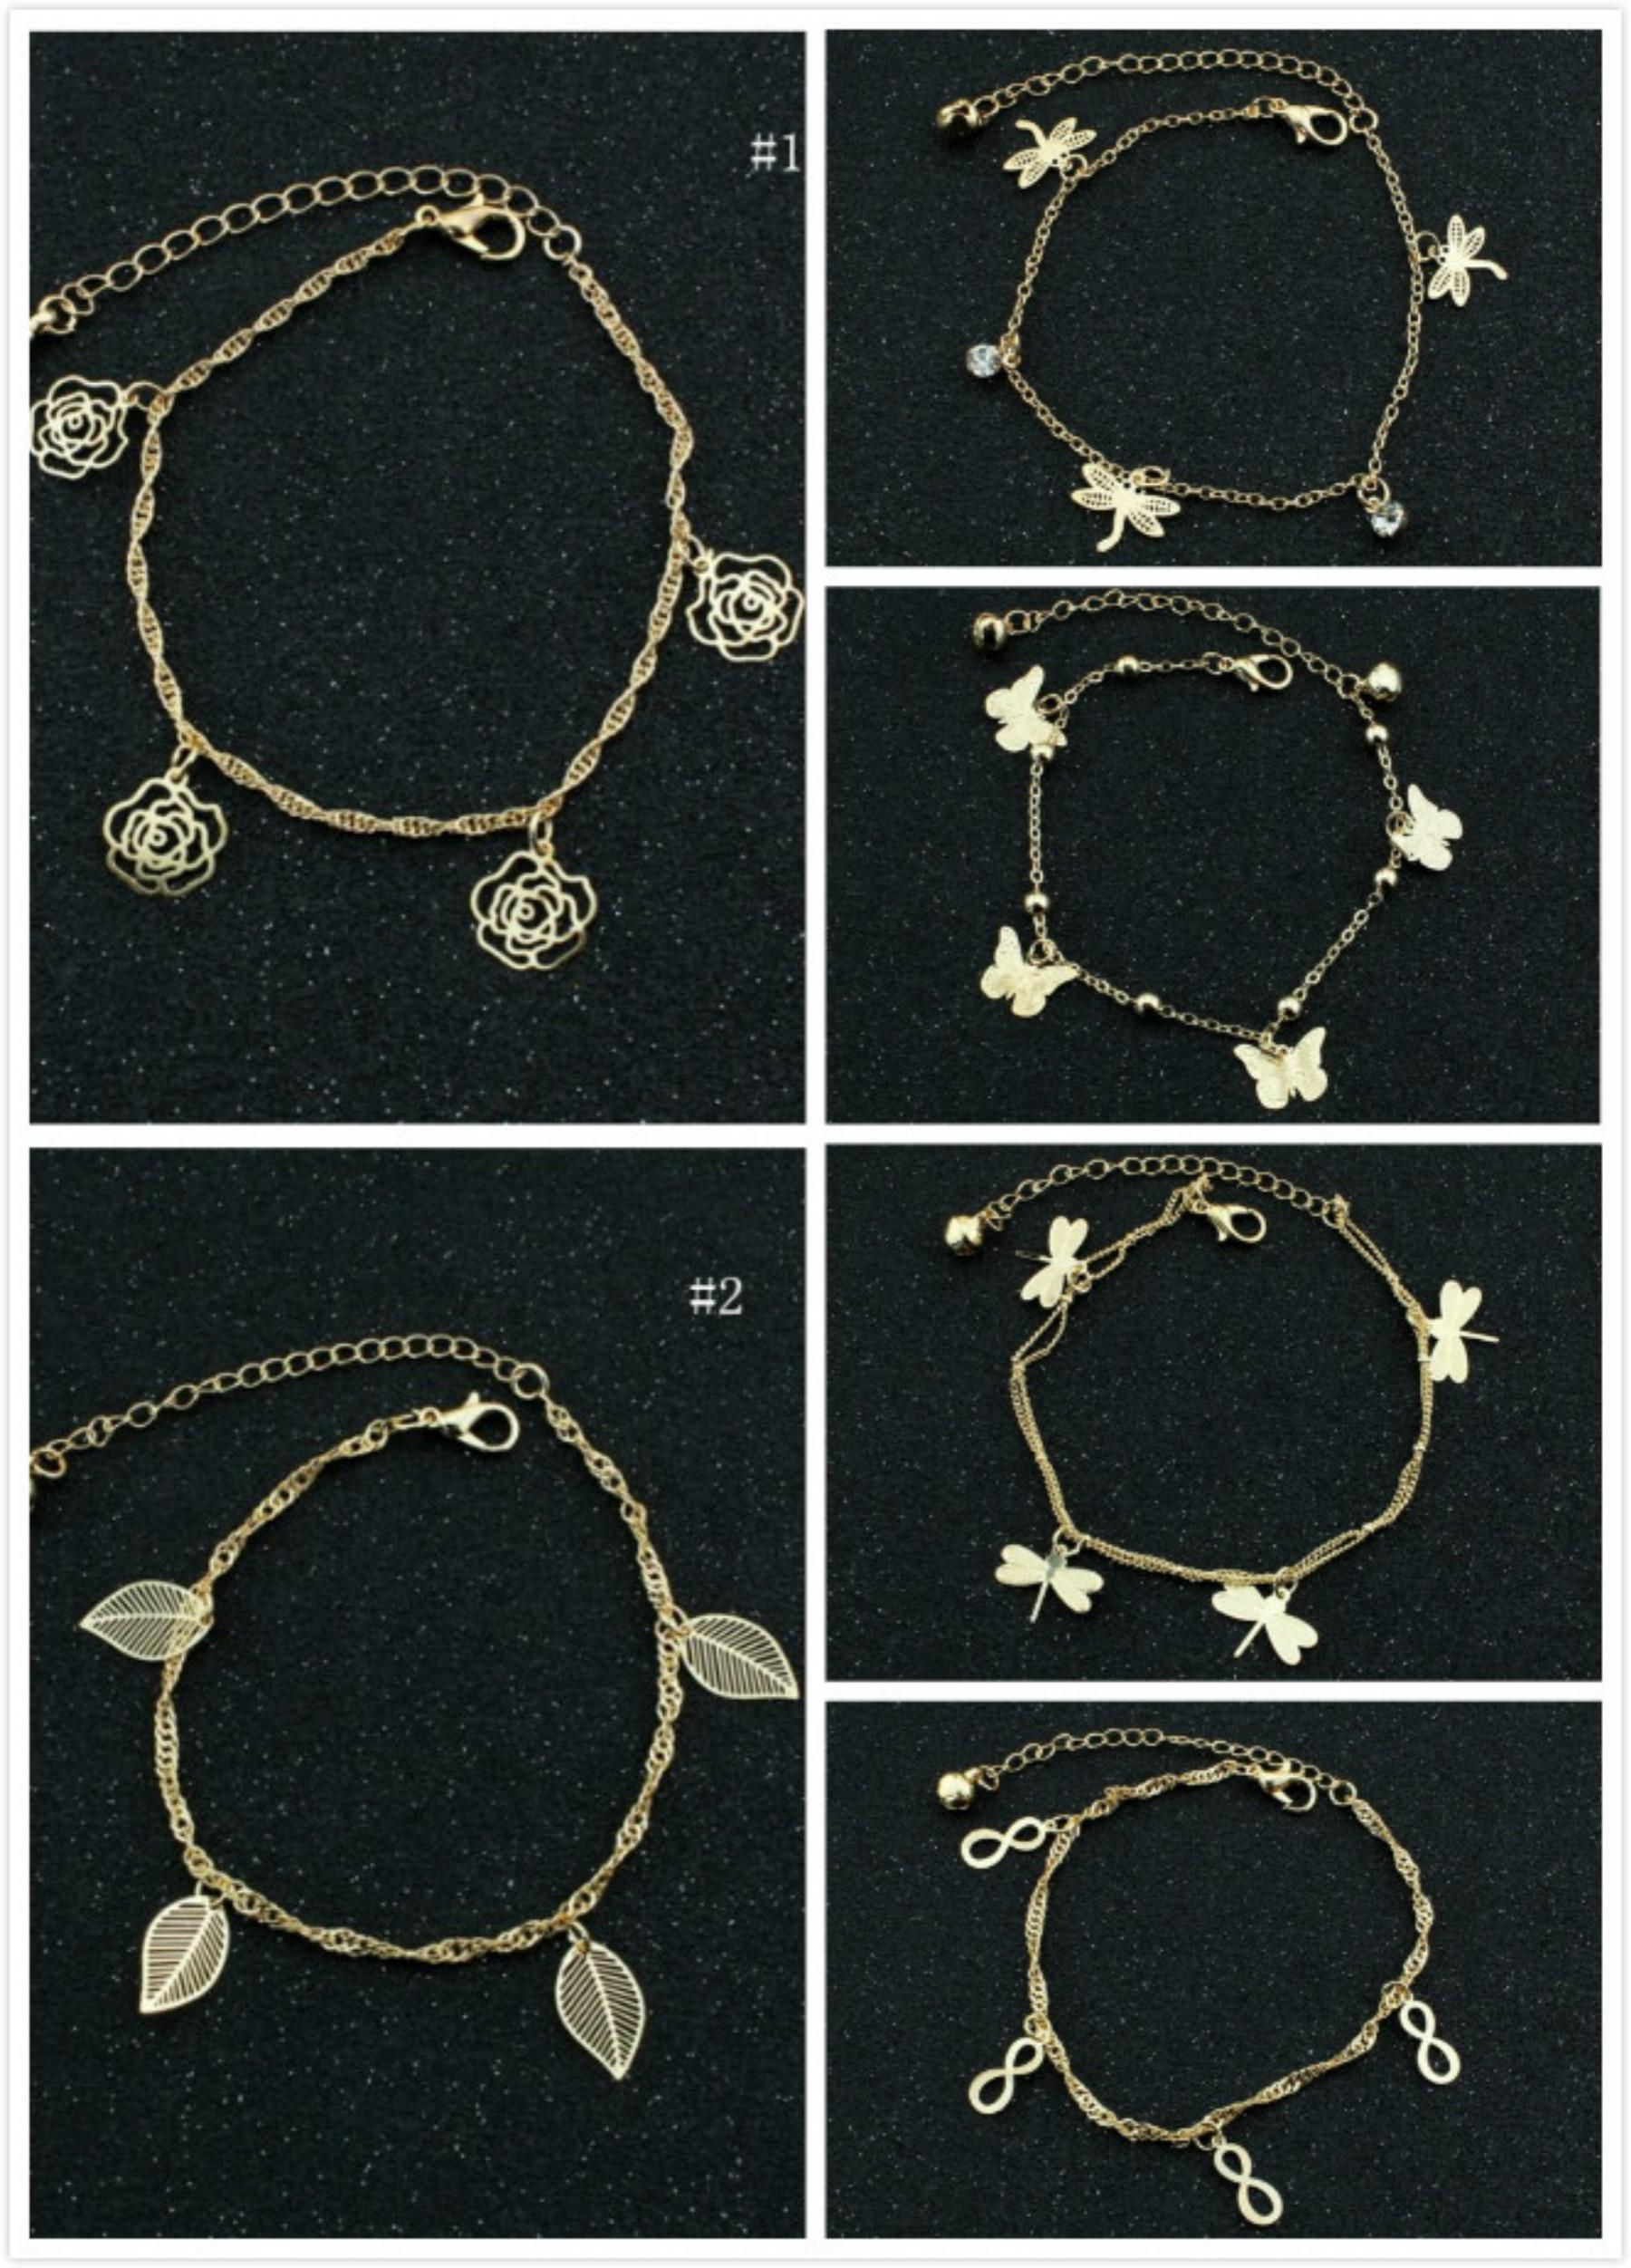 metallic bracelets jewelry gold bitty bracelet zoe lyst star yellow charms with itty ankle anklet s chicco charm women